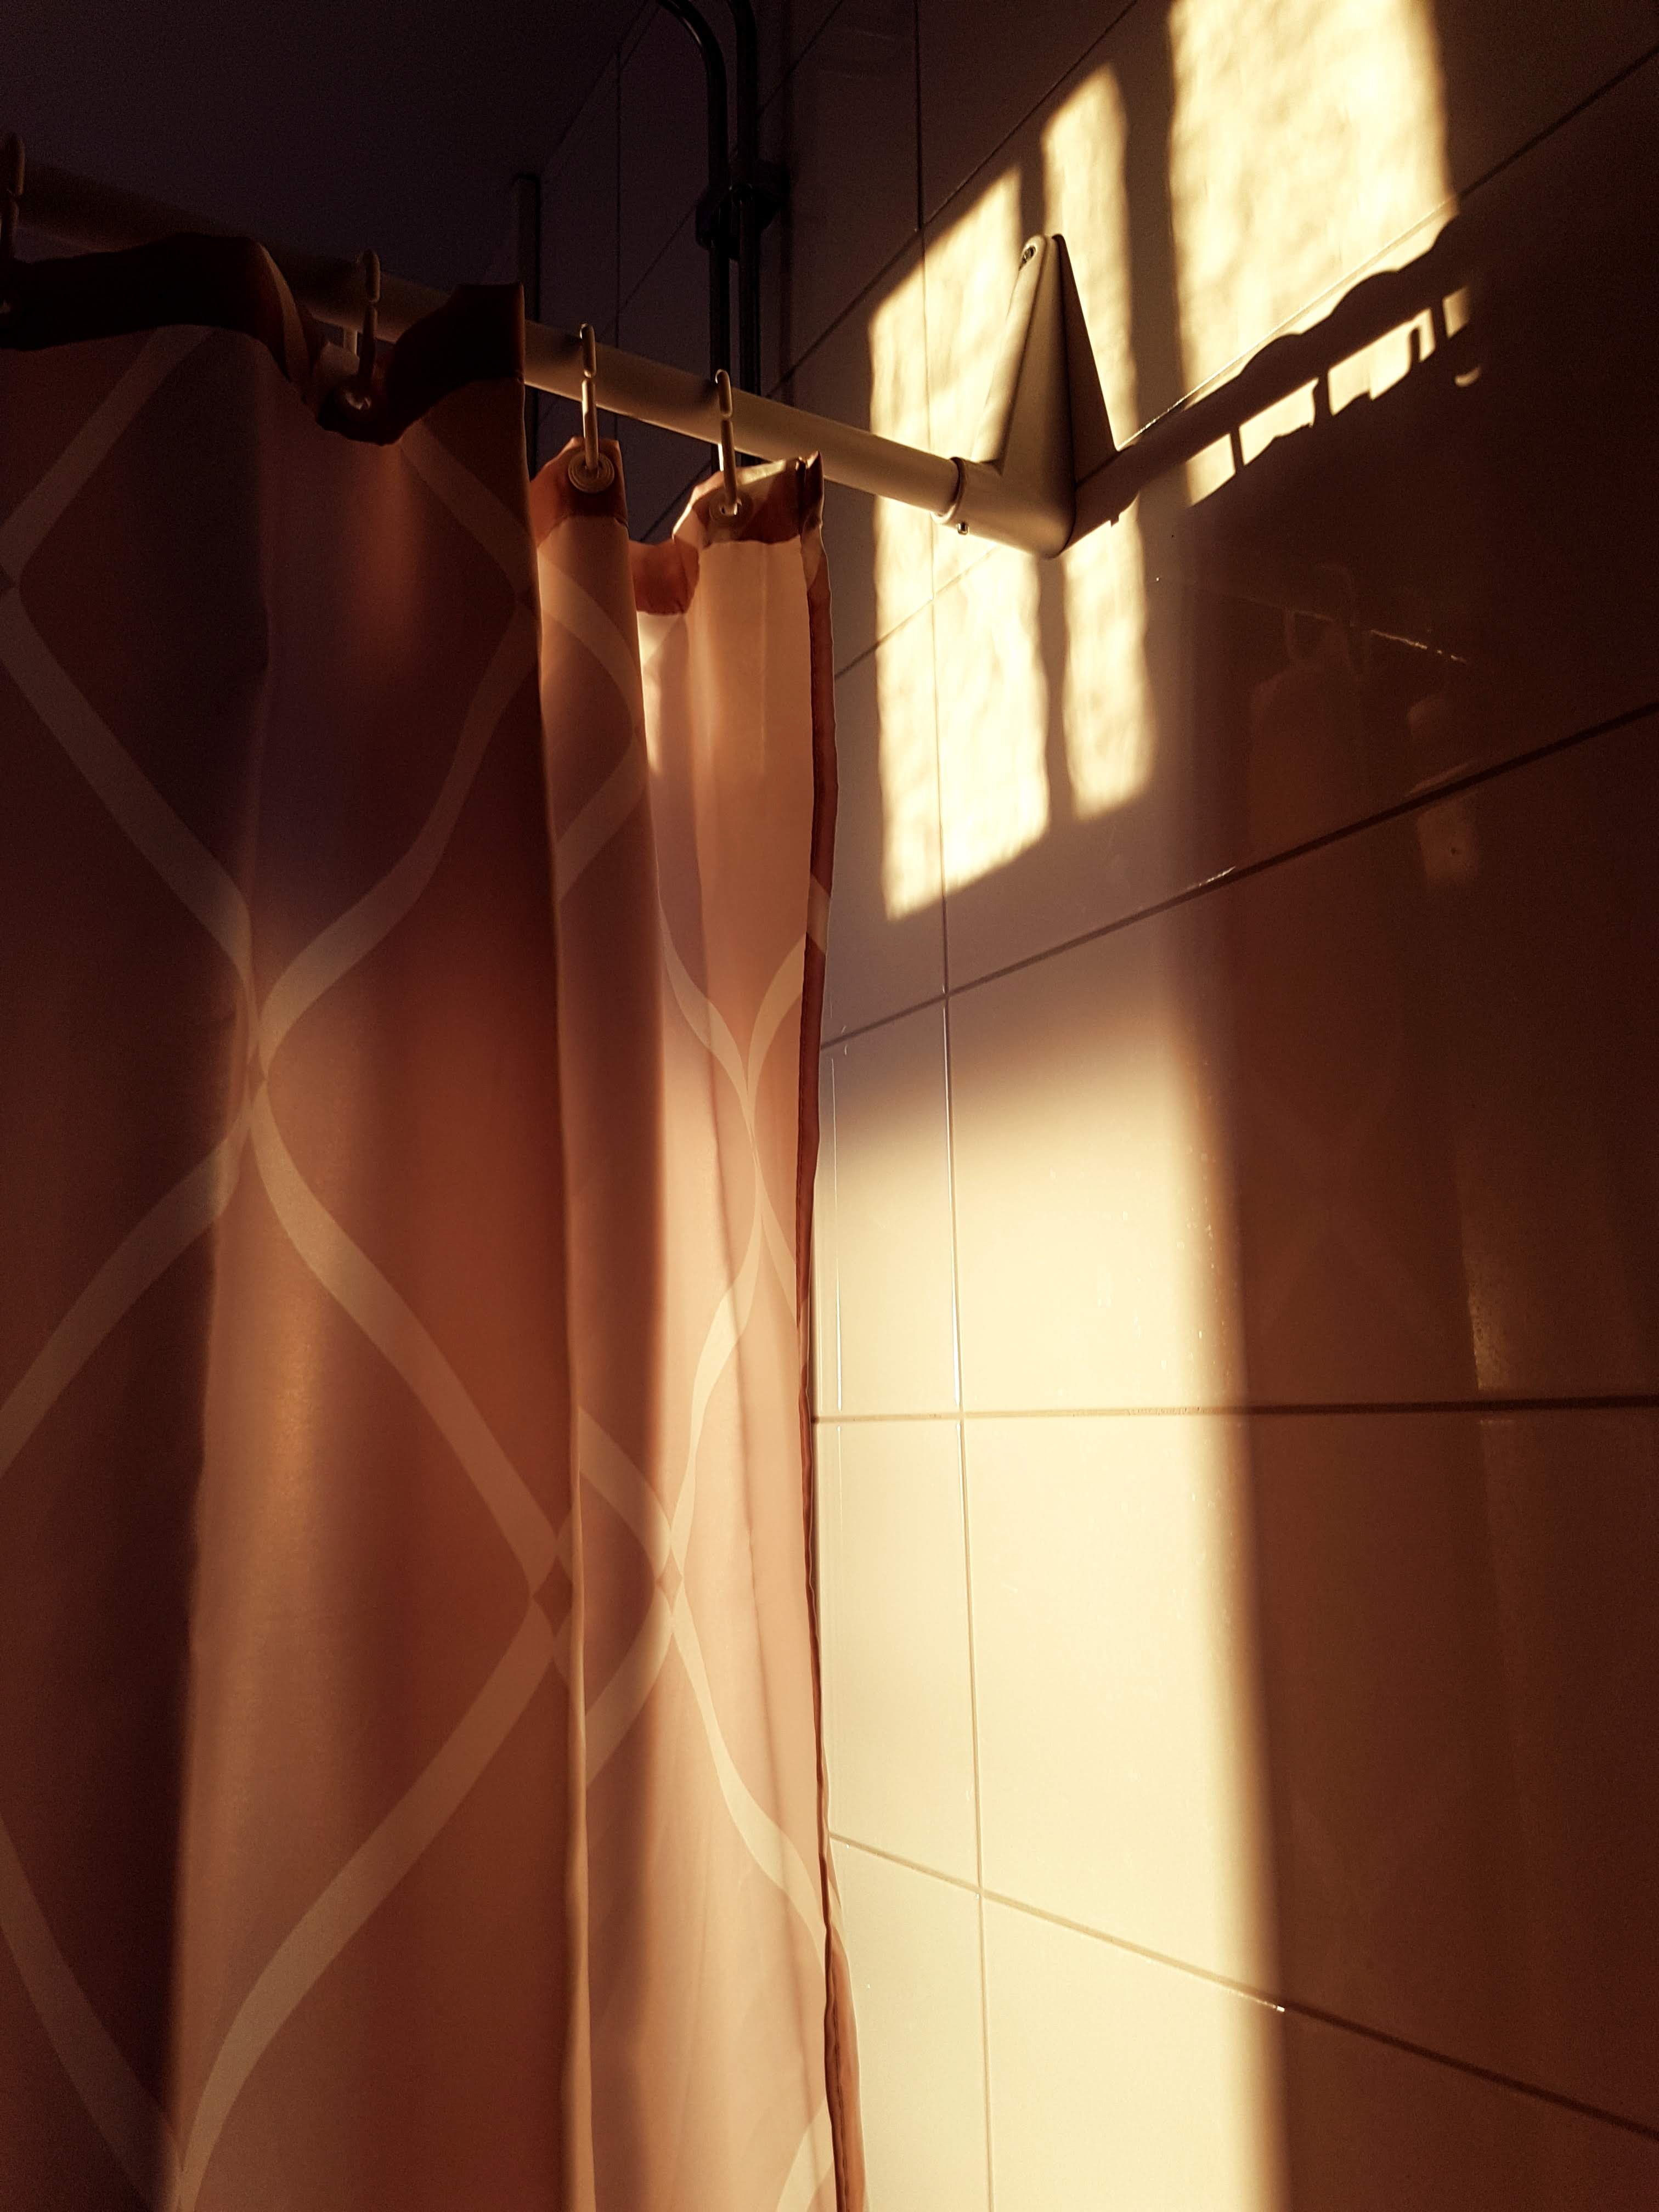 Best shower curtain is spotted because of the sunlight